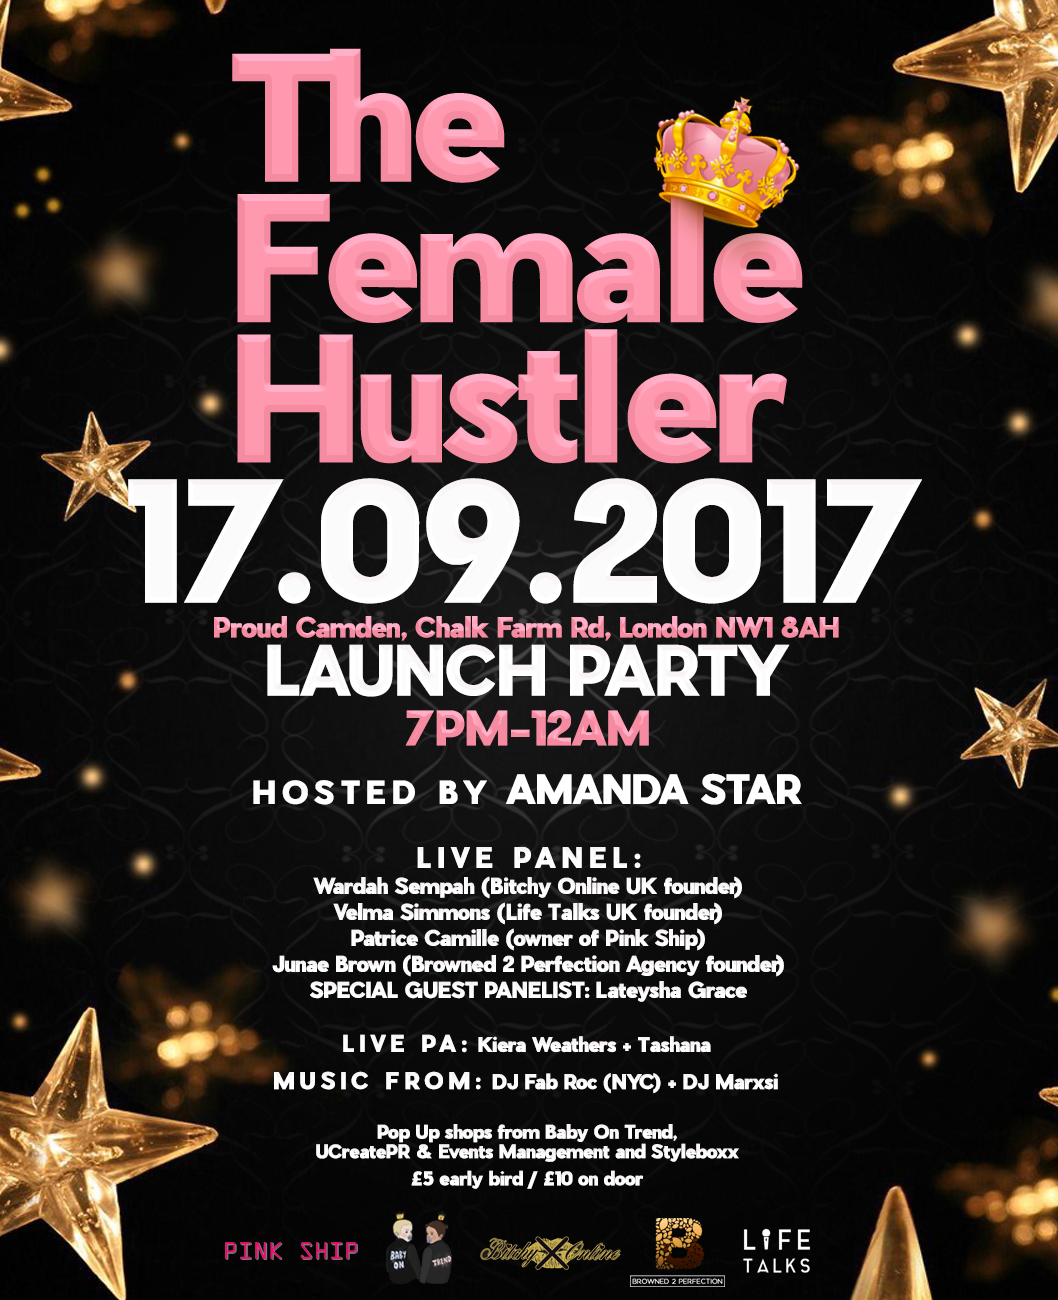 THE FEMALE HUSTLER LAUNCH PARTY 17.09.2017    On Sunday 17th September from 7pm- 12am, we will be transforming Proud Camden into a hub of inspiring, creative and powerful women all sharing their stories, advice and guidance. Expect an impressive array of businesswomen on the panel, hosted by Amanda Star.  The Female Hustler is a brand dedicated to hard working females whether it in the entertainment industry, businesswomen or females killing it in their 9-5. They aim to shine light on them and inspire others!    This is a must-attend networking event for anyone starting up their own business and building their brand or those with established brands wishing to further expand their network. Not only will it be an informative, worthwhile opportunity to learn from other's successes, but there will also be interactive pop-up shops, live DJ sets and performances.   The event will consist of a panel including Wardah Sempa (Bitchy Online UK founder / Link Up TV Editor), Patrice Camille (Pink Ship founder), Velma Simmons (Life Talks UK founder), Junae Brown (Browned 2 Perfection Agency founder & NYC event planner), and special guest panellist Lateysha Grace who will also have a pop up shop for her company 'Baby On Trend'.   Expect DJ sets from NYC's DJ Fab Roc and The Beat 103.6fm's DJ Marxsi plus live performances from X Factor 2015 finalist Kiera Weathers and Tashana. Plus mini pop up shops of female run businesses from PR, management and events company UCreatePR and vintage sunglasses company Styleboxx! There are 2 pop up spaces available which you can book via contacting thefemalehustler1@gmail.com   Early bird tickets £5 from  https://www.eventbrite.com/e/the-female-hustler-launch-party-tickets-36825786920  or £10 on the door.   For any press enquiries/ guest list email: thefemalehustler1@gmail.com  Please do not hesitate to get in touch if you have any questions!